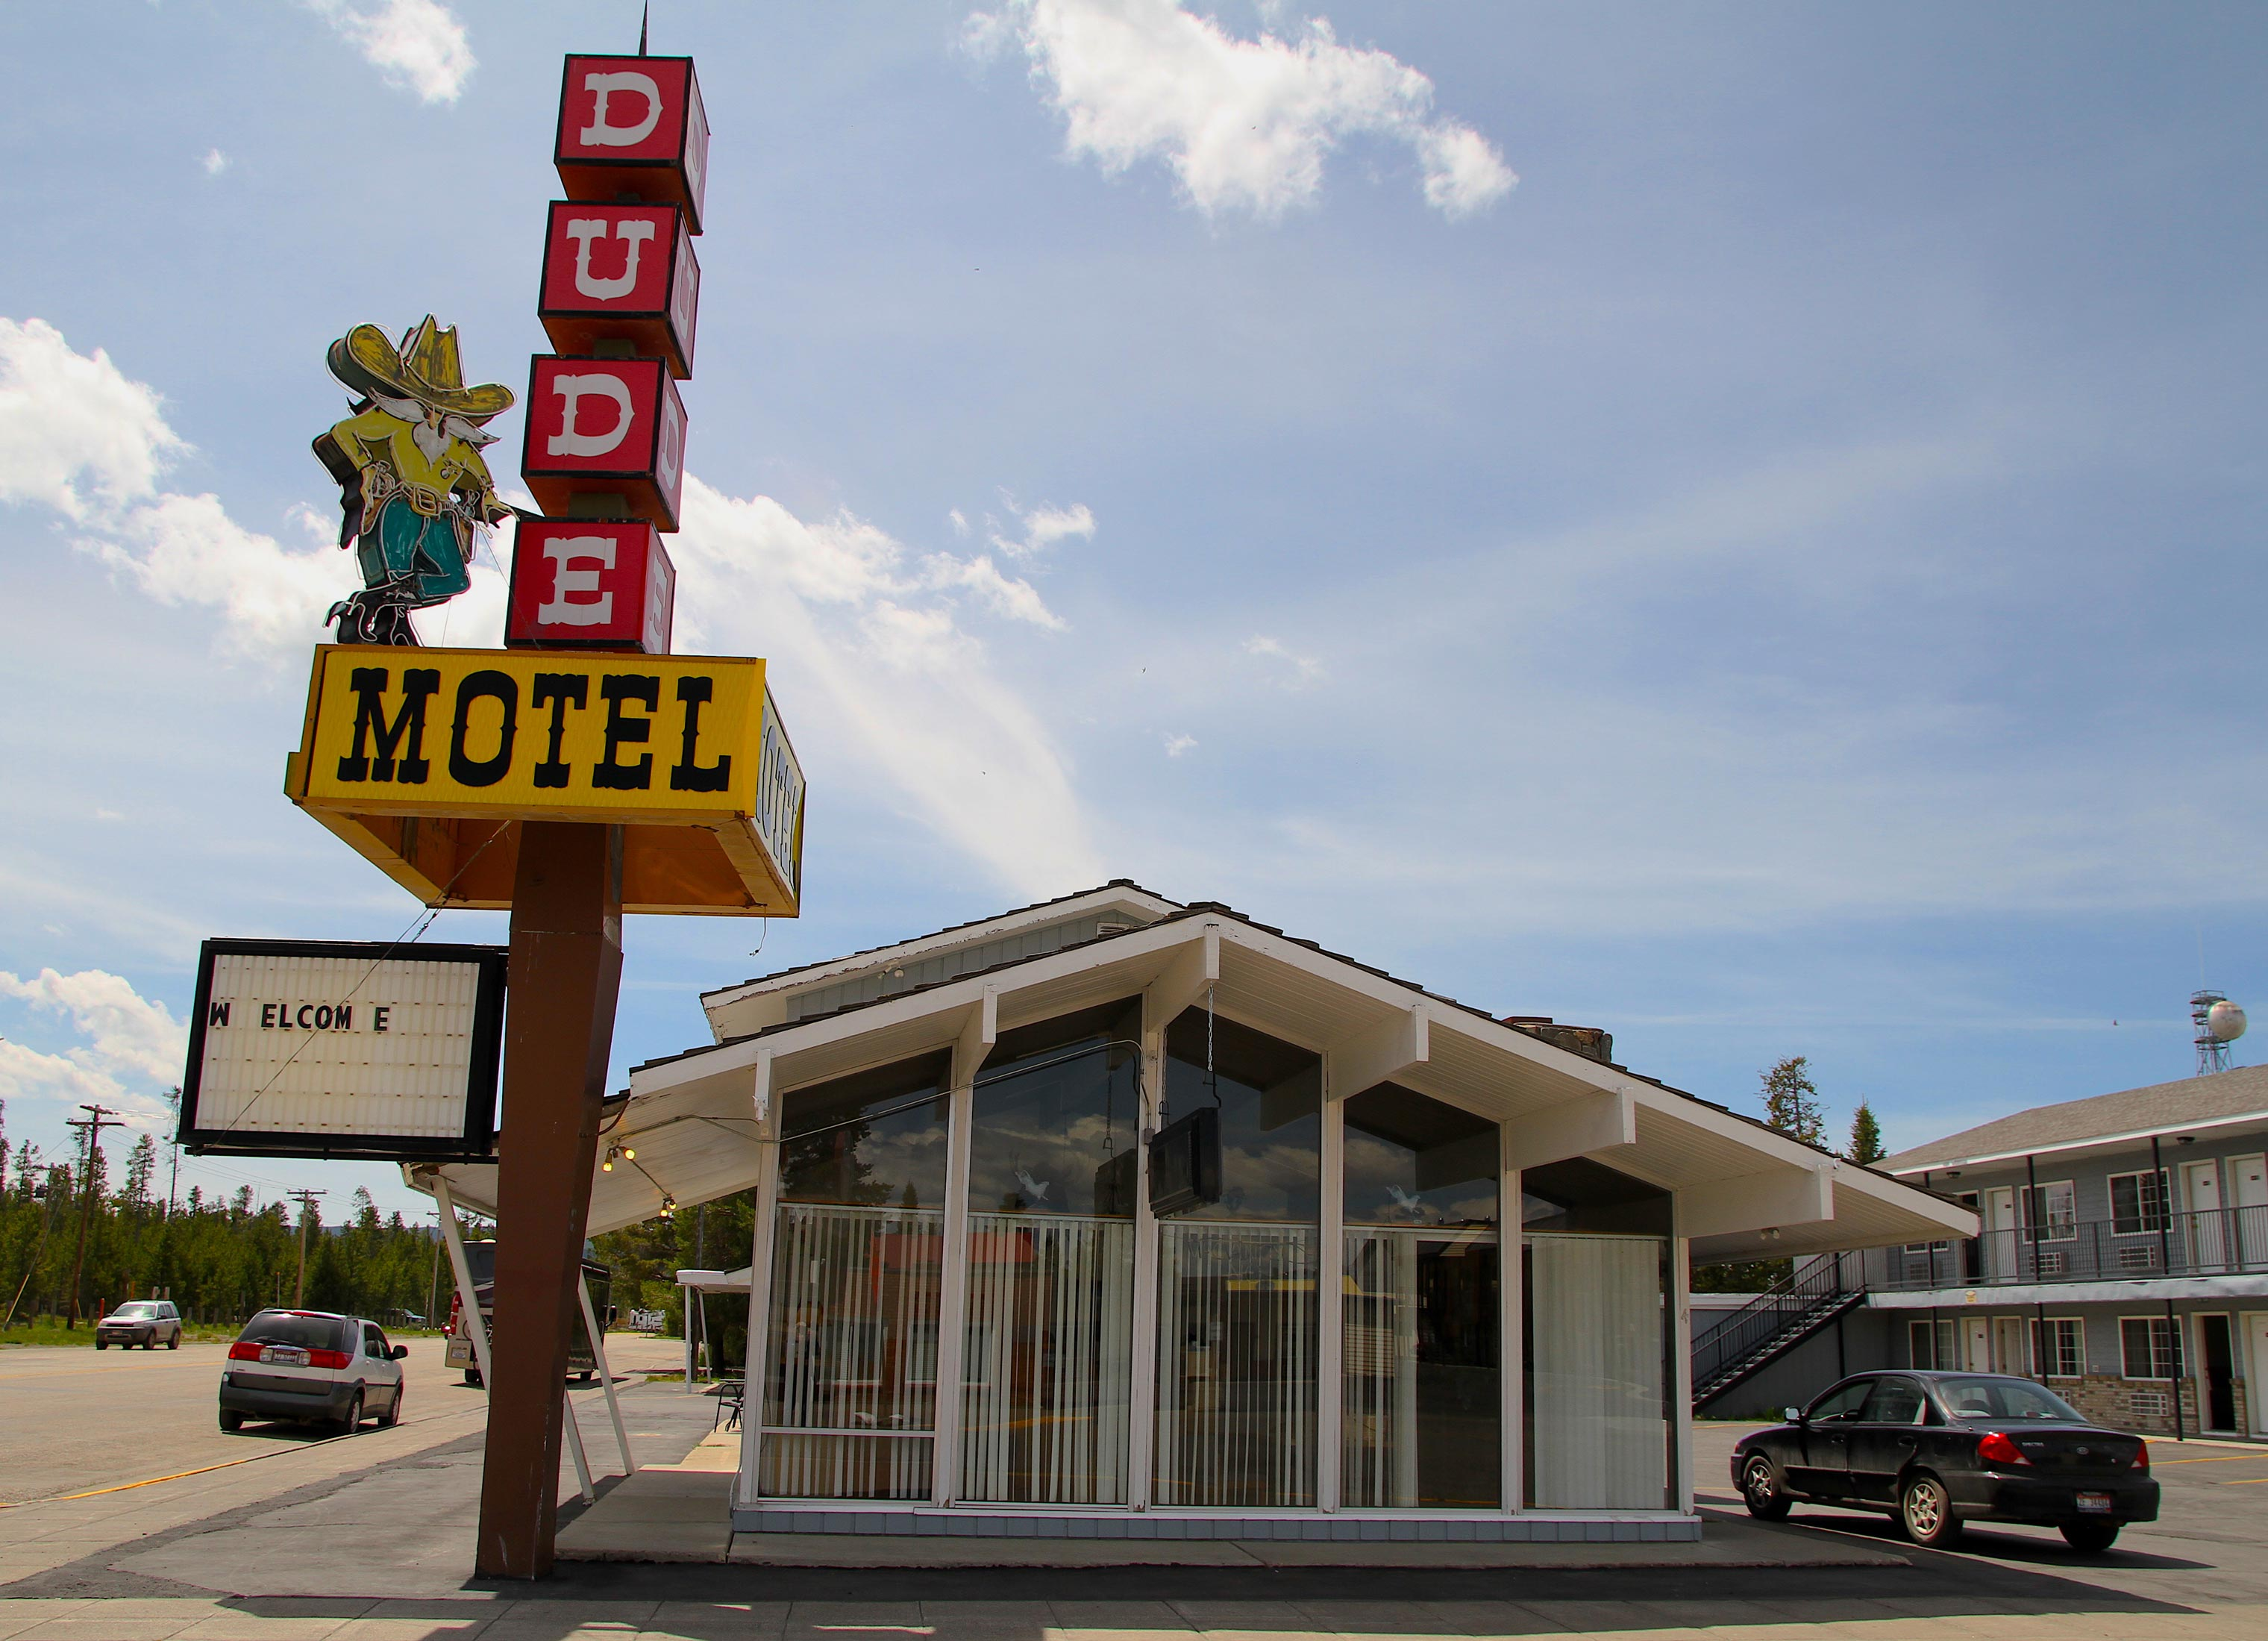 The Dude Motel